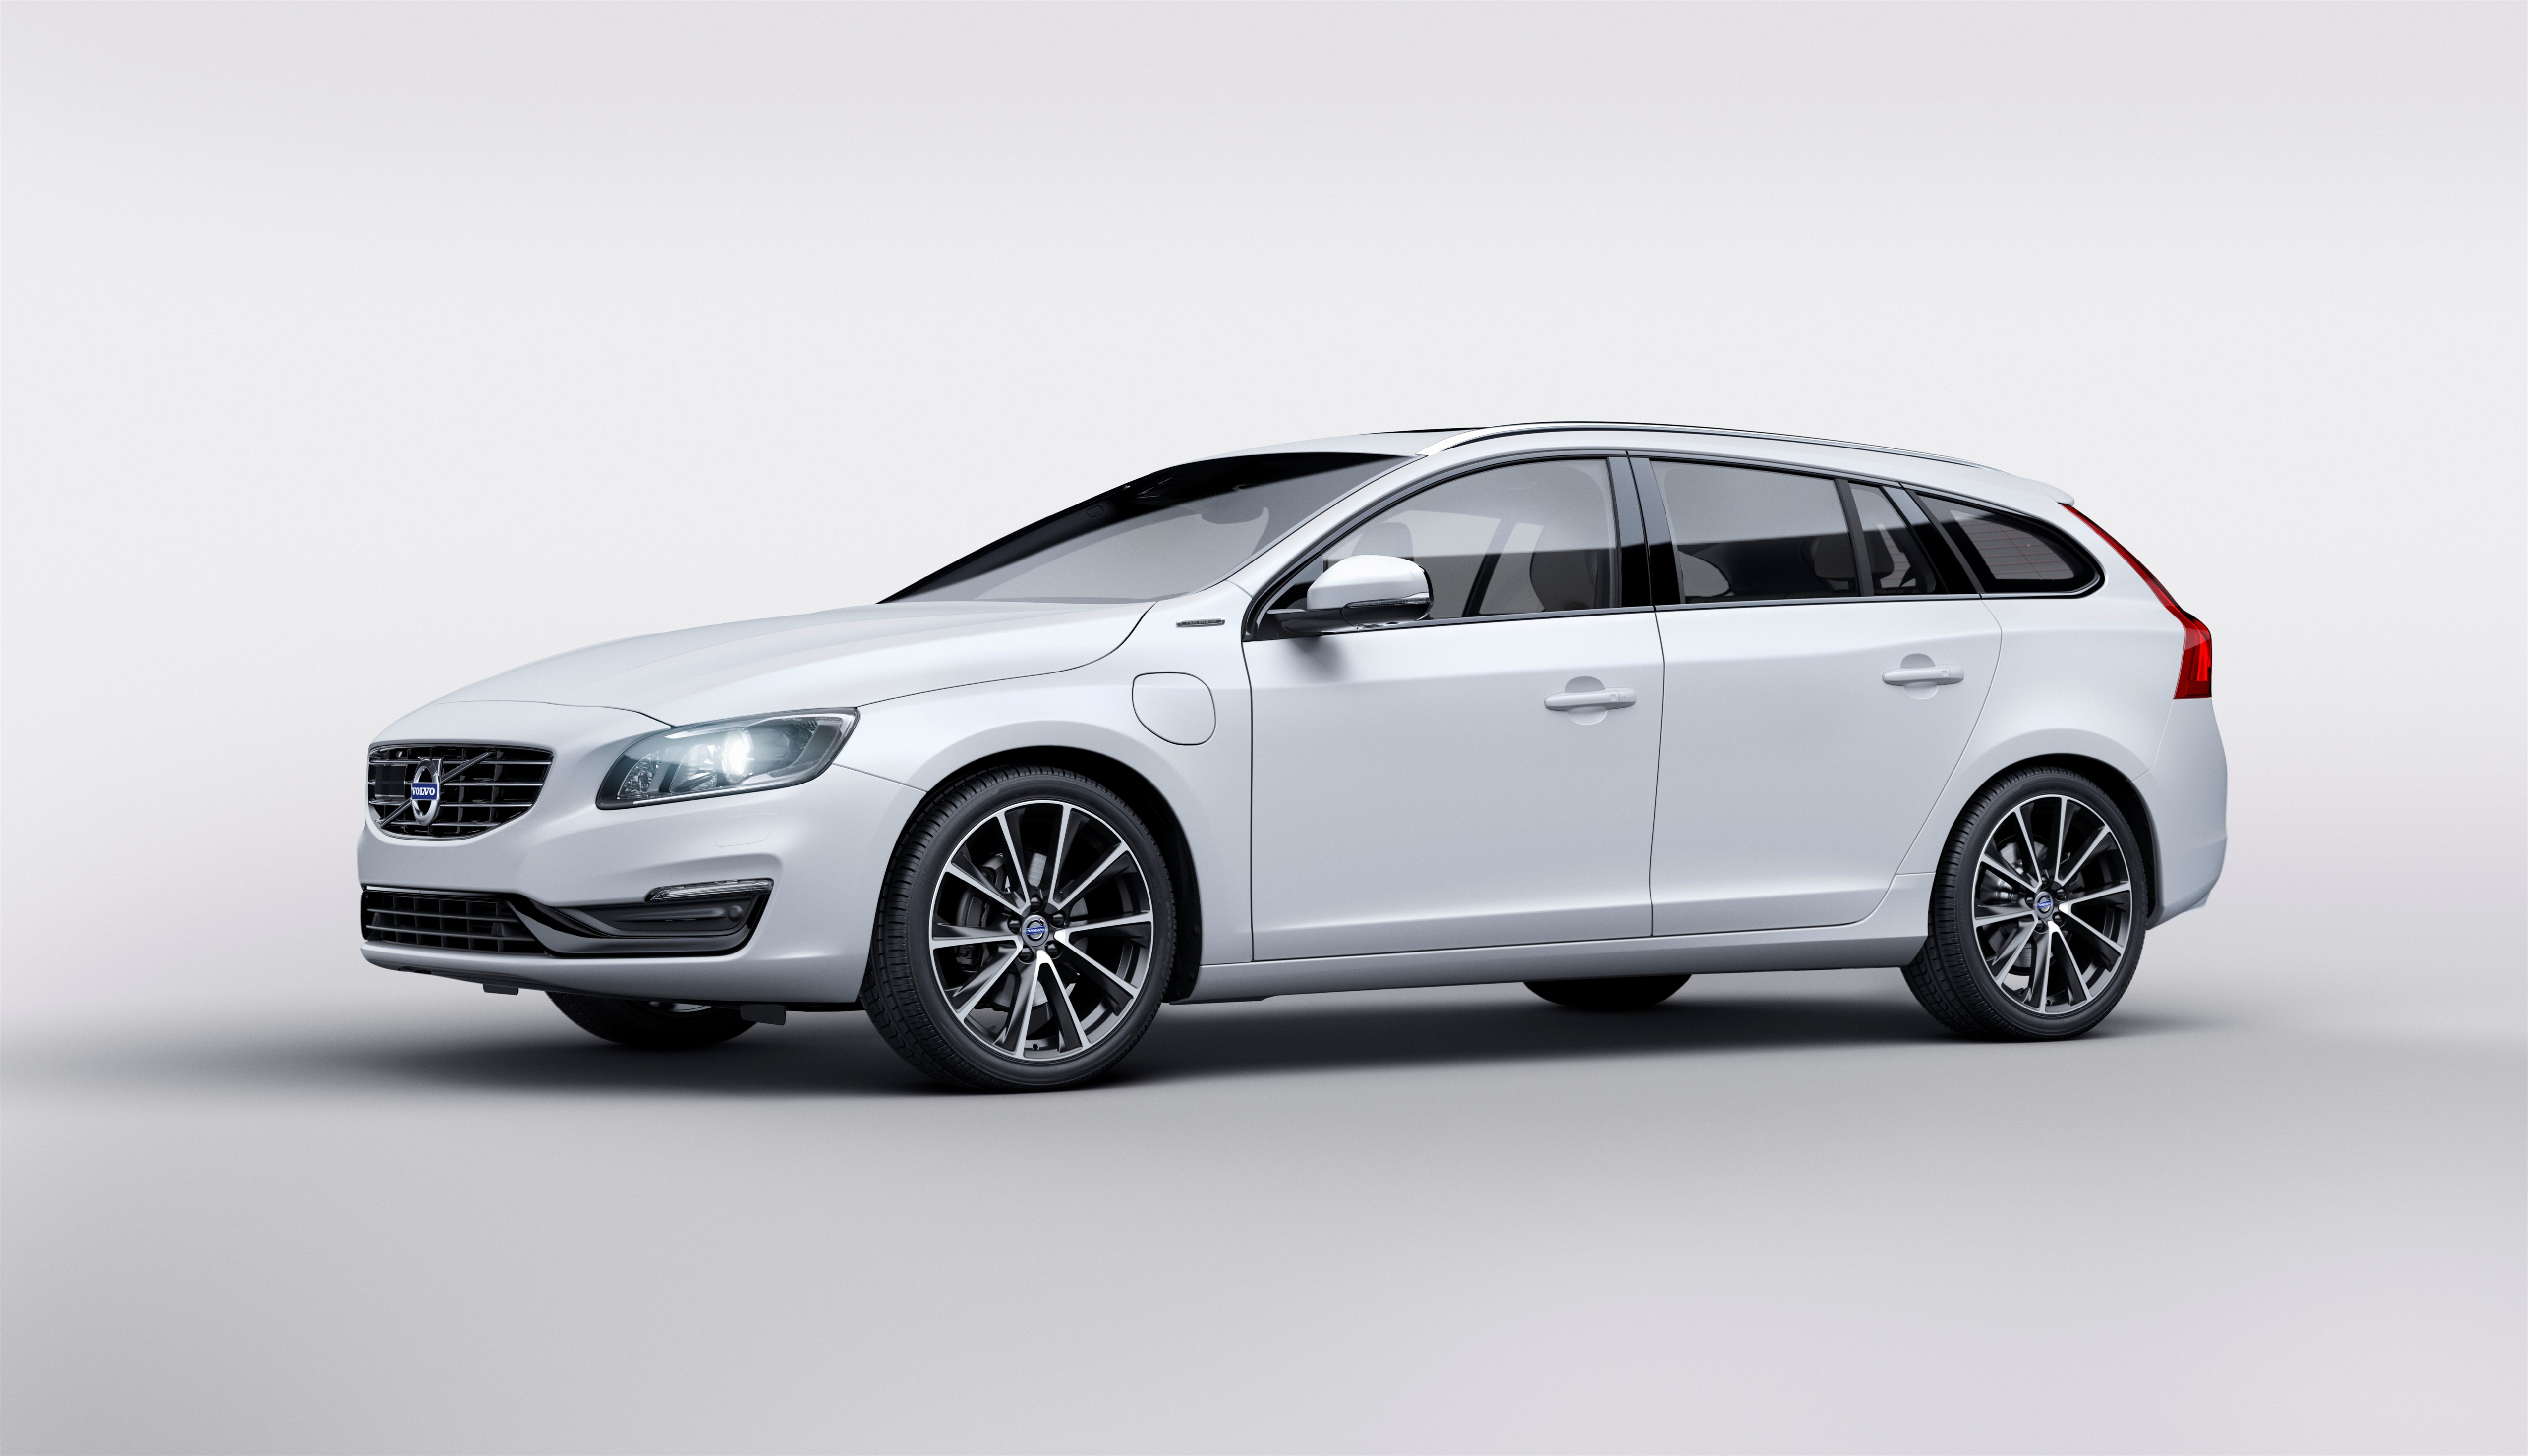 159238_Volvo_V60_Twin_Engine_Special_Edition.jpg